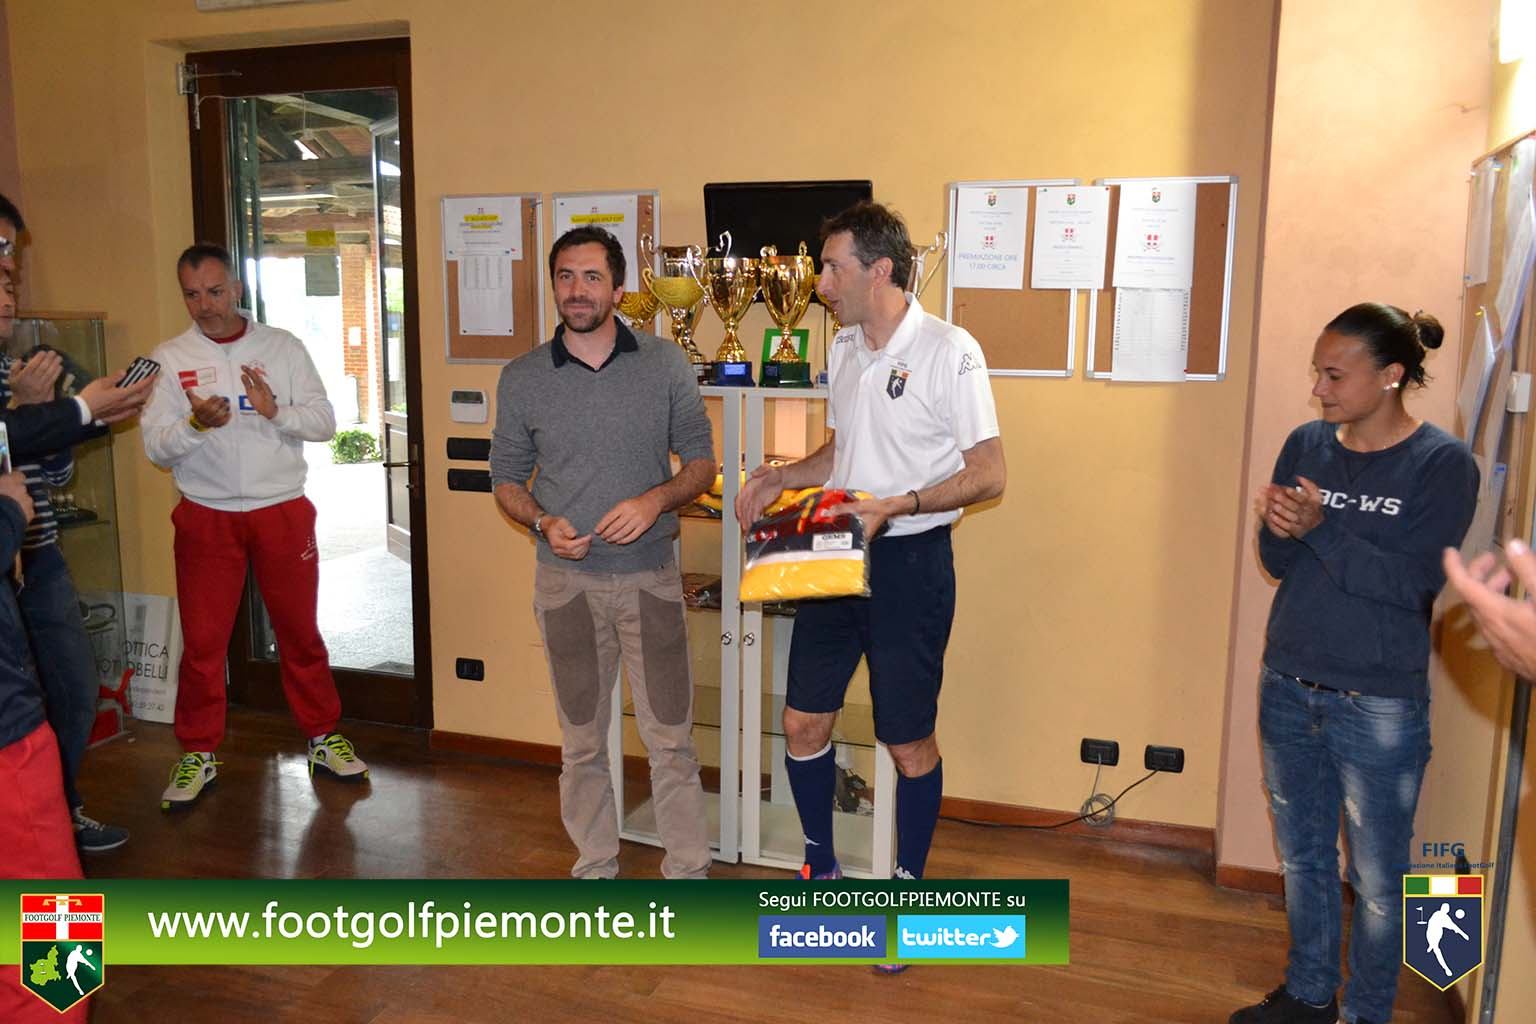 FOTO 9 Regions' Cup Footgolf Piemonte 2016 Golf Città di Asti (At) 30apr16-104